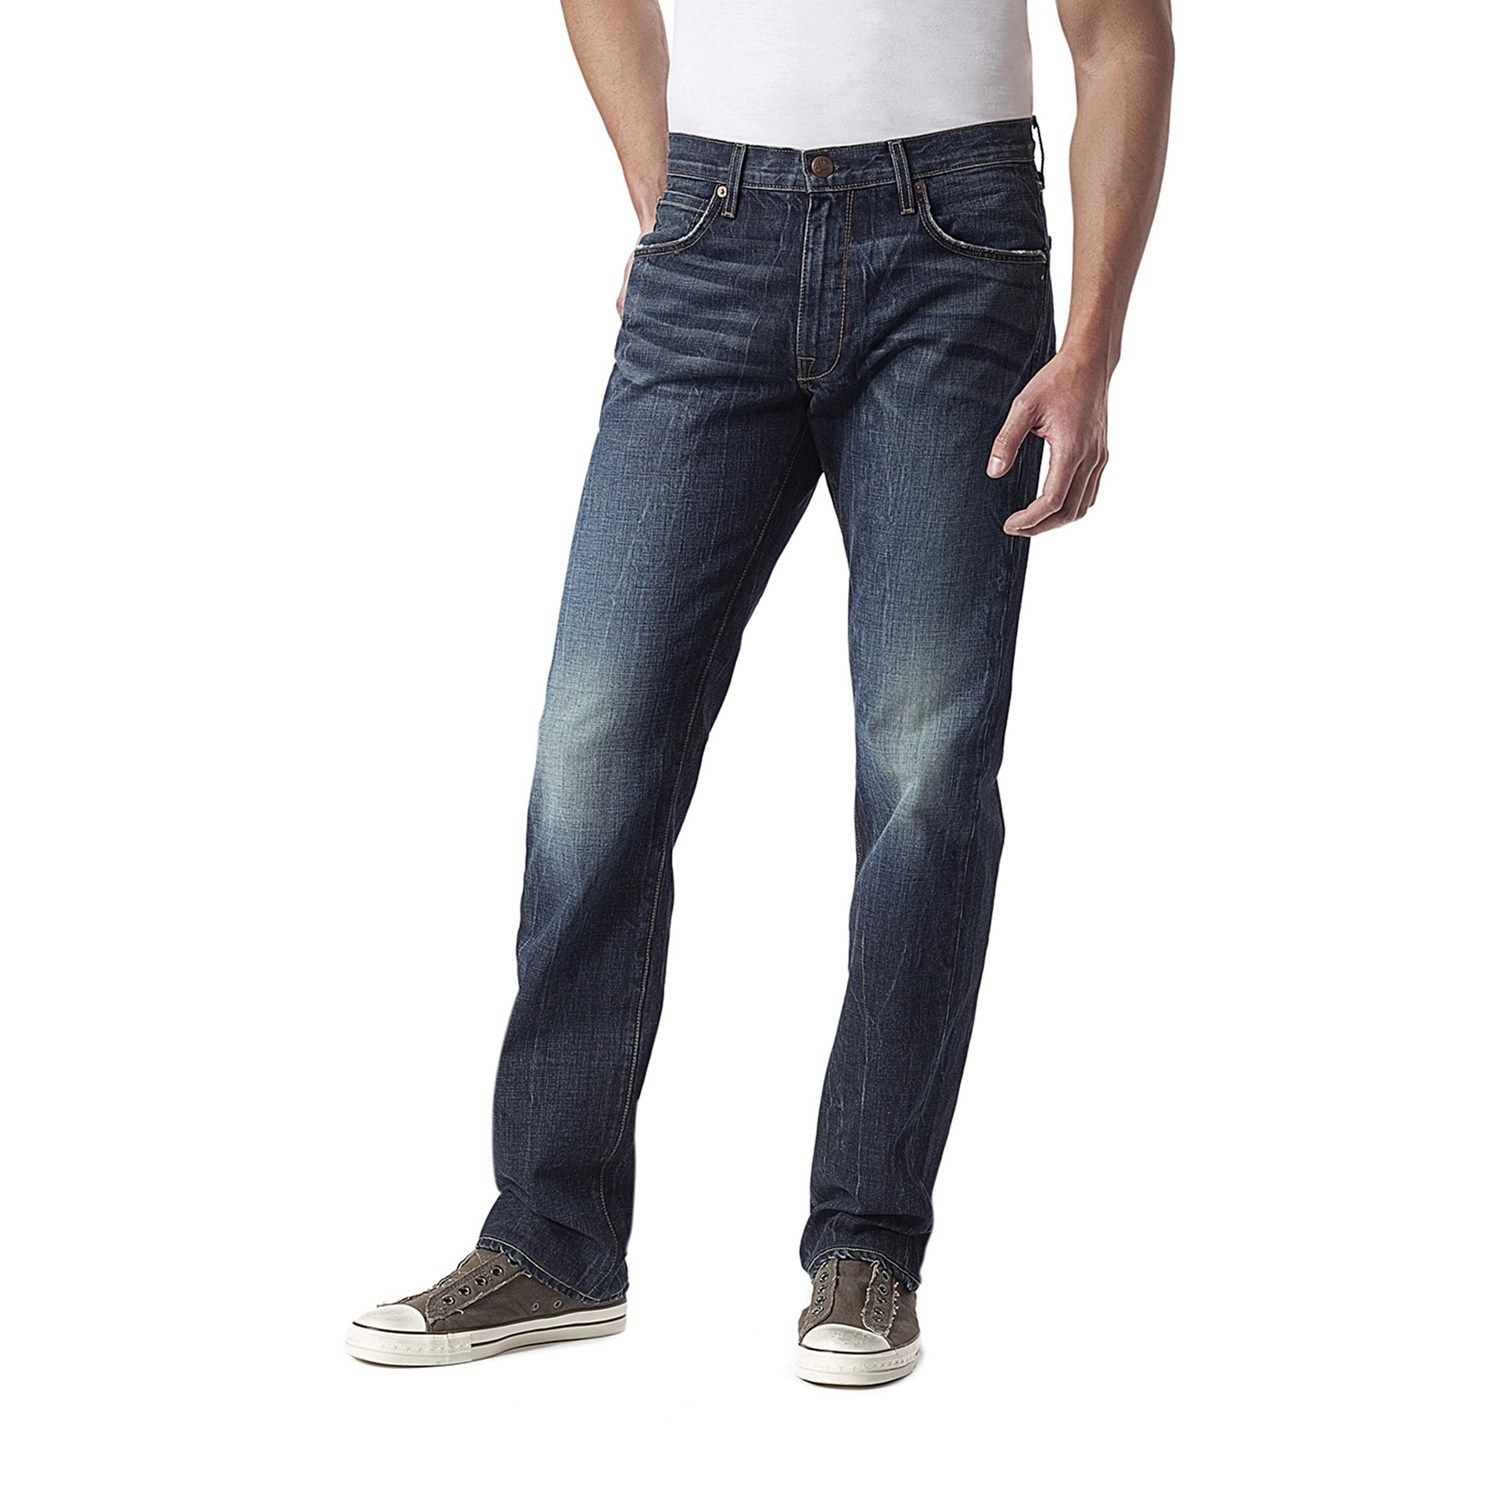 Images of Dark Denim Jeans - Get Your Fashion Style